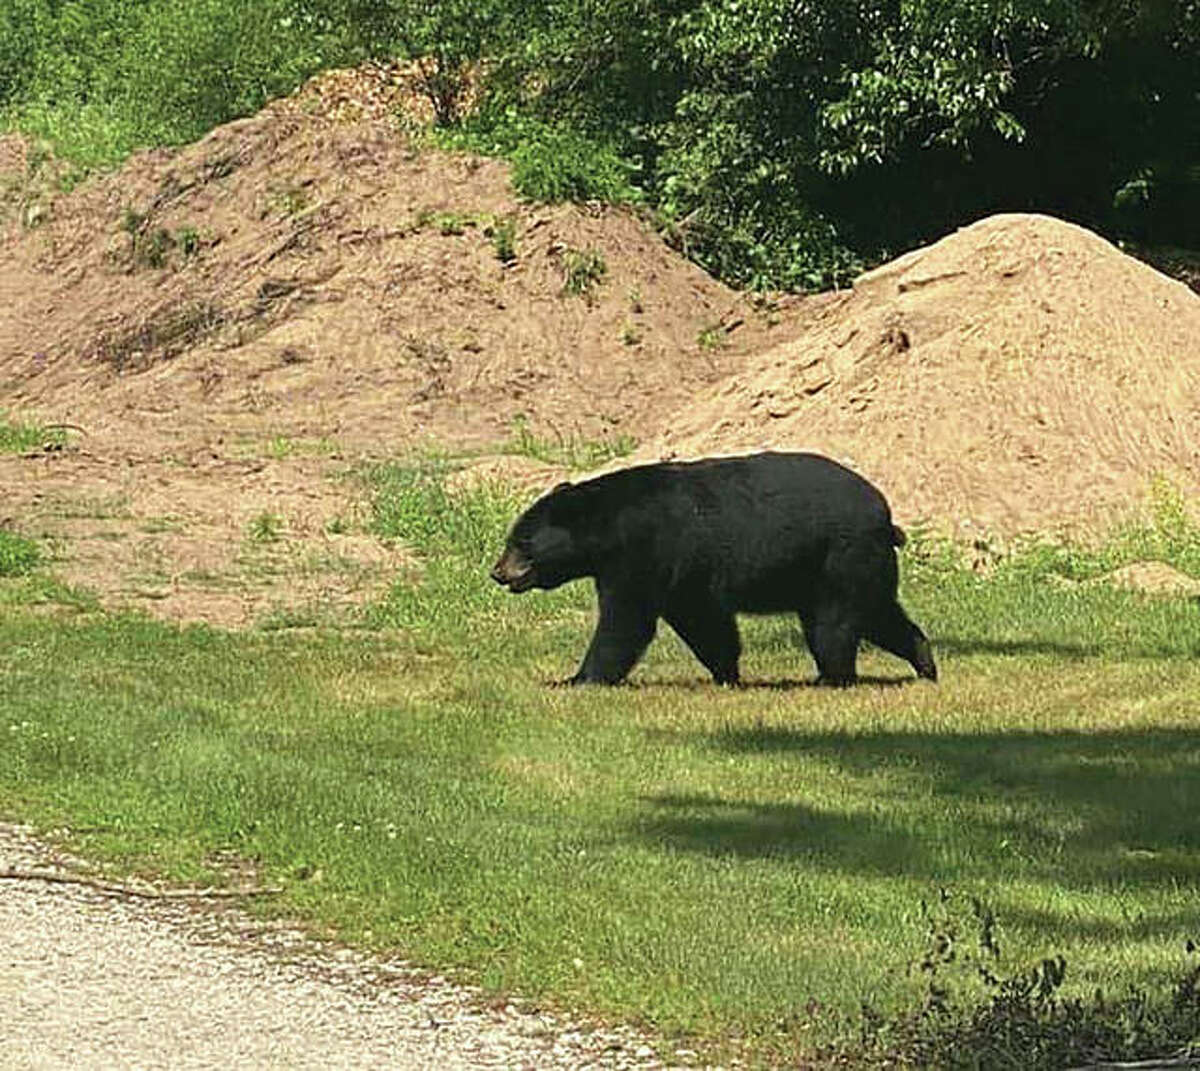 An American black bear is making its way south through Illinois. The bear, which has not caused any problems, last was seen north of Illinois Route 27, east of Barry. Hundreds of people are turning out to see the bear, but the Illinois Department of Natural Resources is asking onlookers to keep their distance and not to hinder the bear.